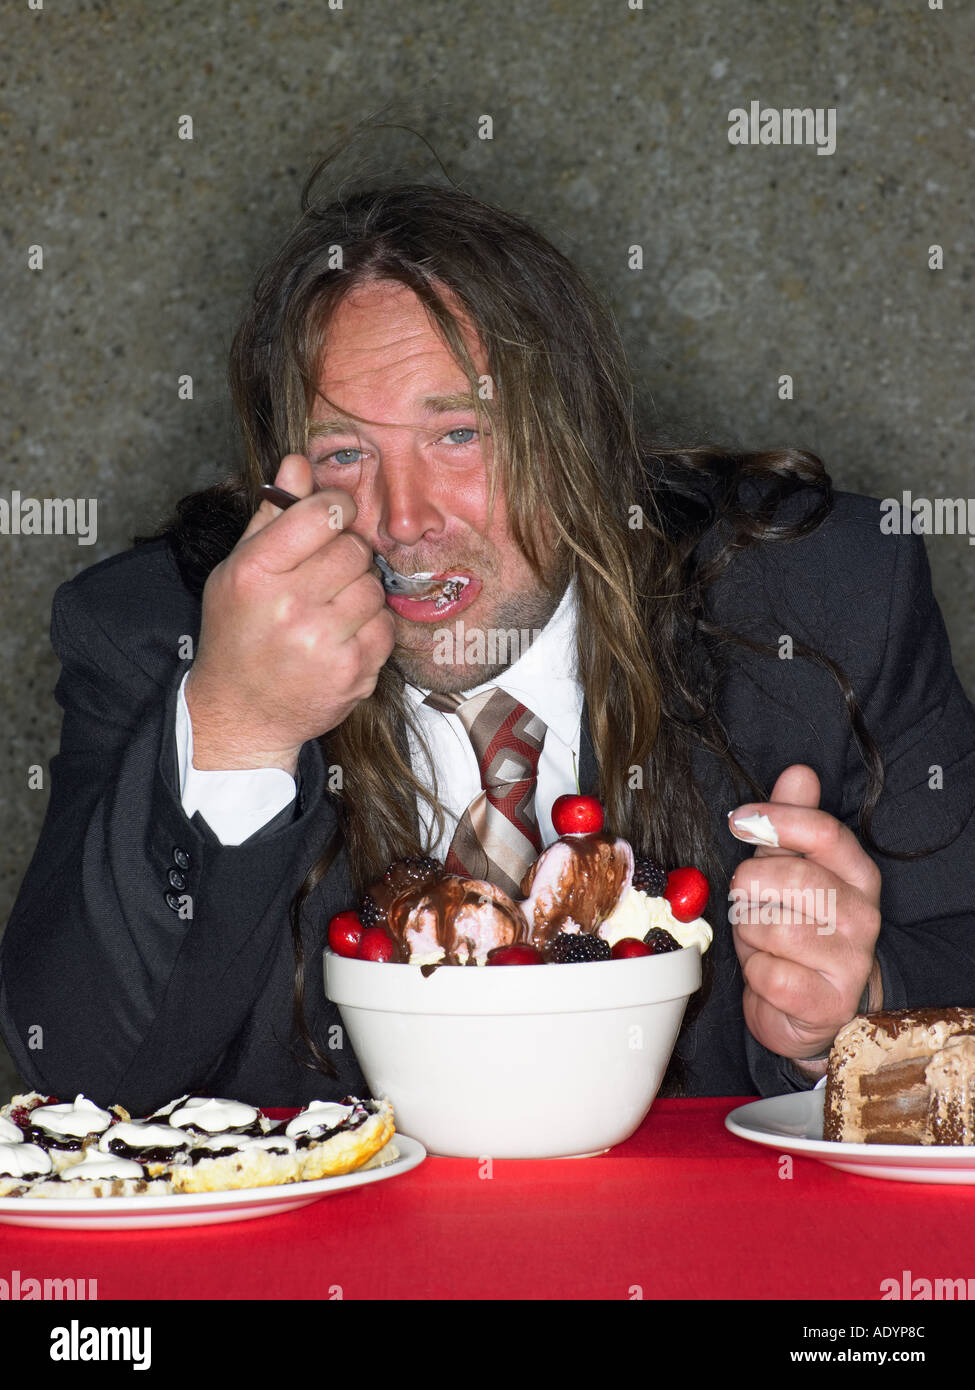 Long haired fat man eating stuffing himself with cake and ice cream - Stock Image